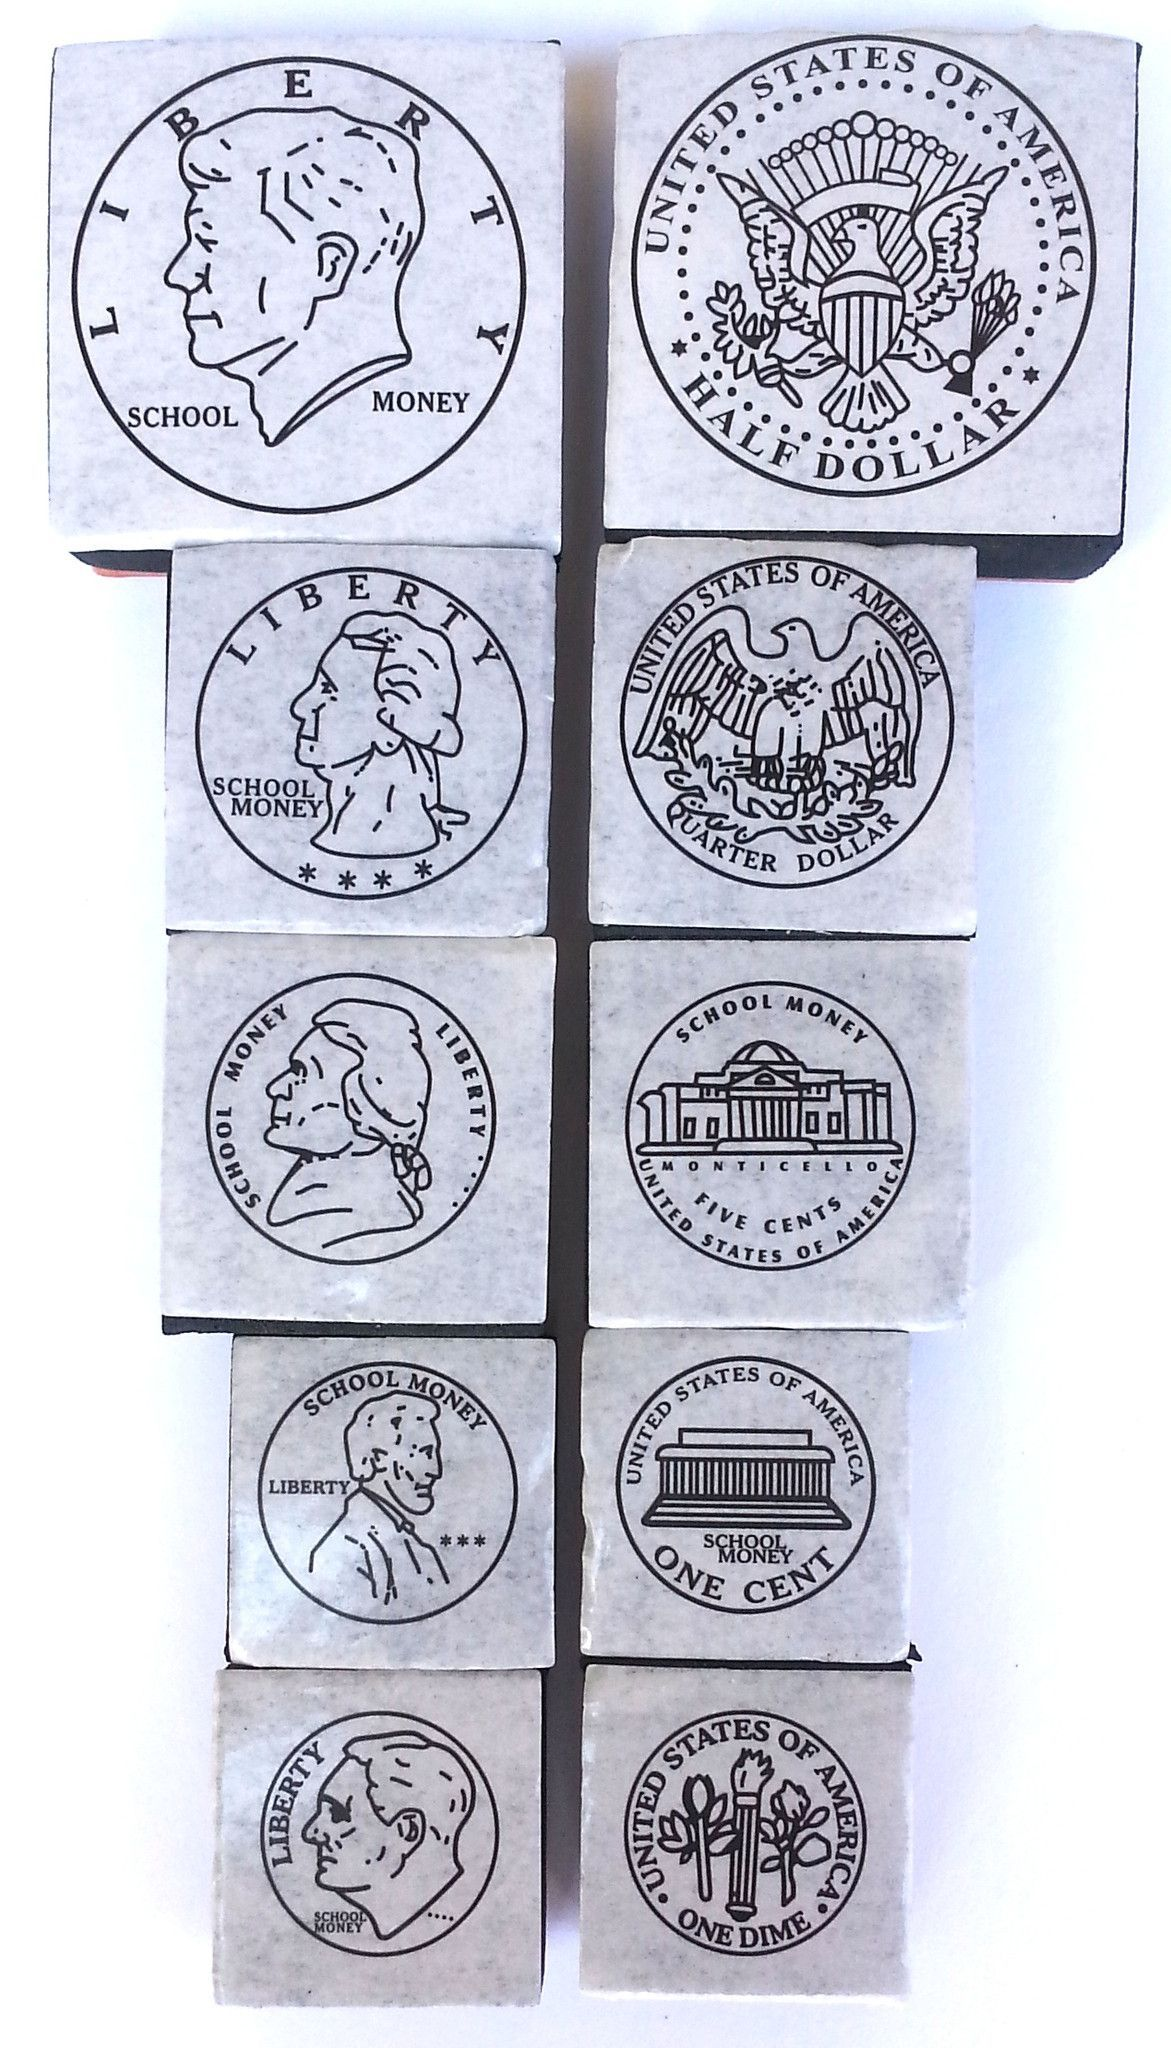 Set of 10 Life Sized Coin Rubber Stampers - Count Money - Educational Teaching Aid